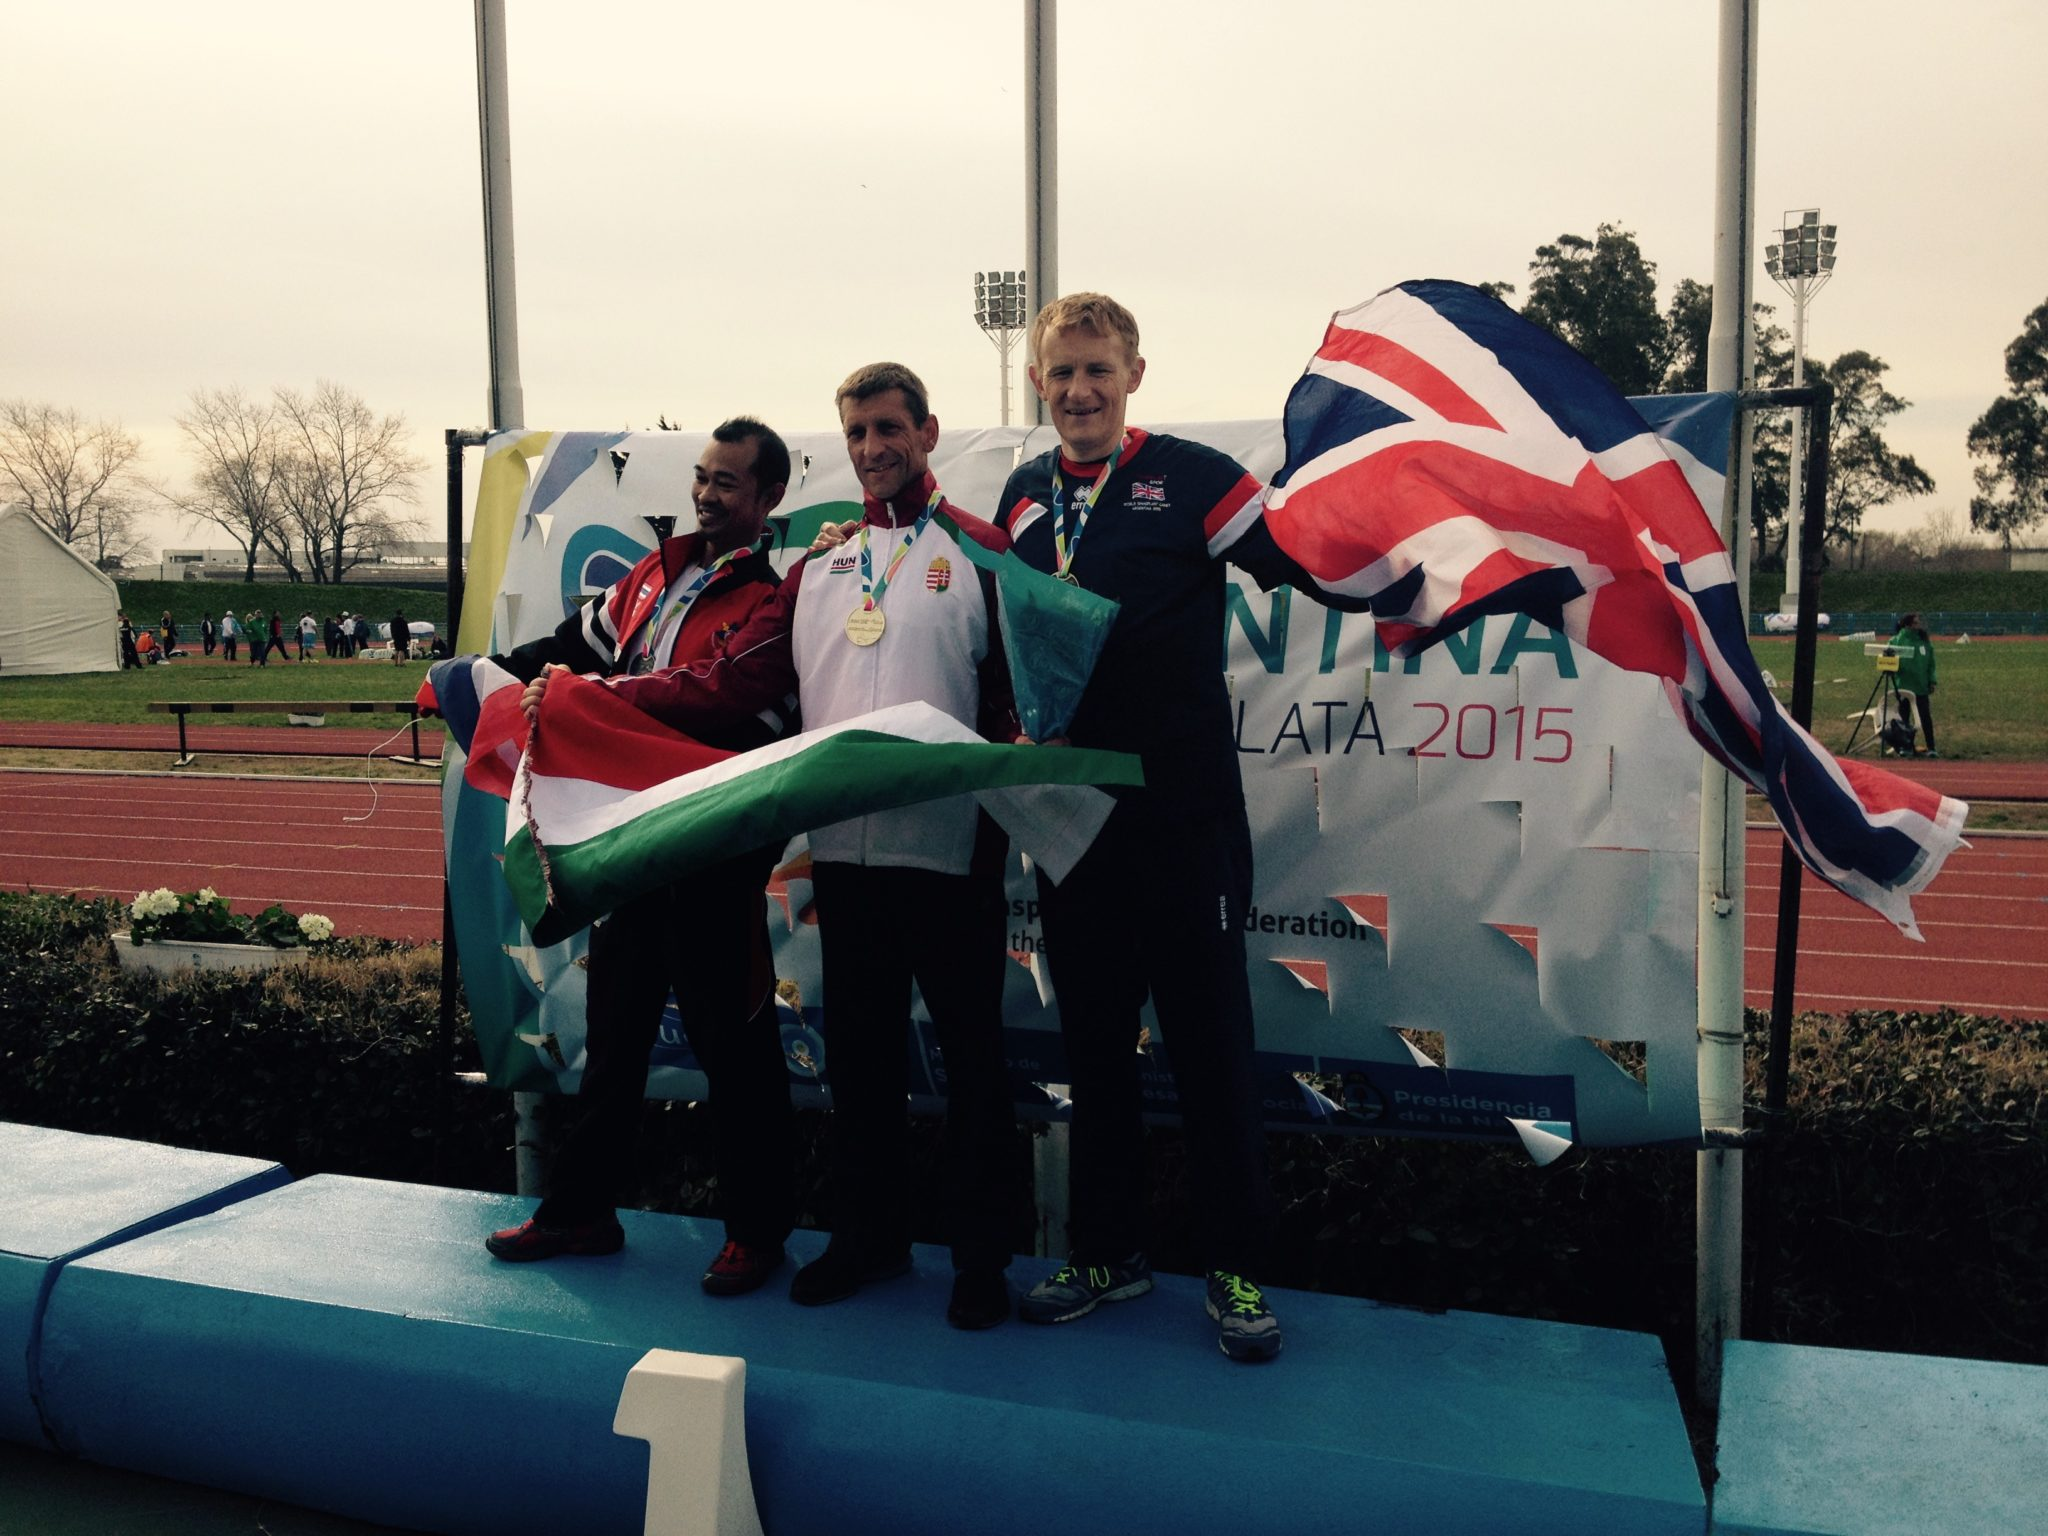 Success for Mark Swift at World Transplant Games following support of Neil Hudgell Trust